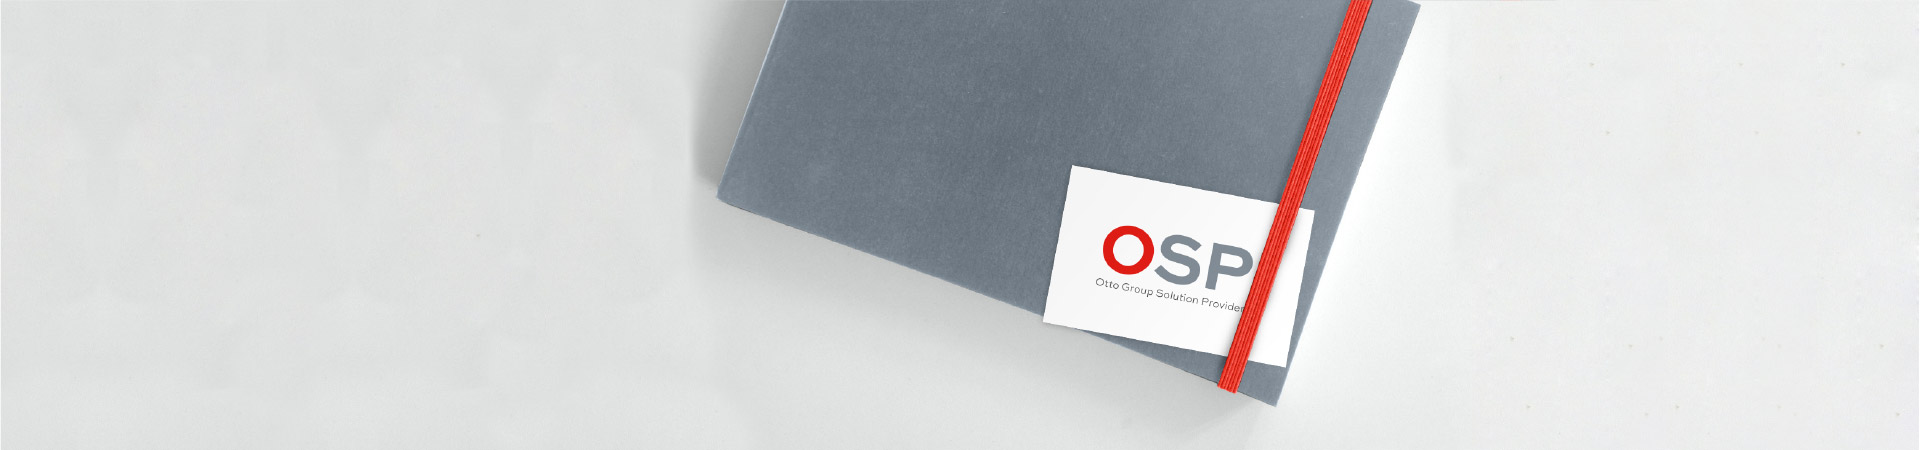 Otto Group Solution Provider (OSP) - Kontakt